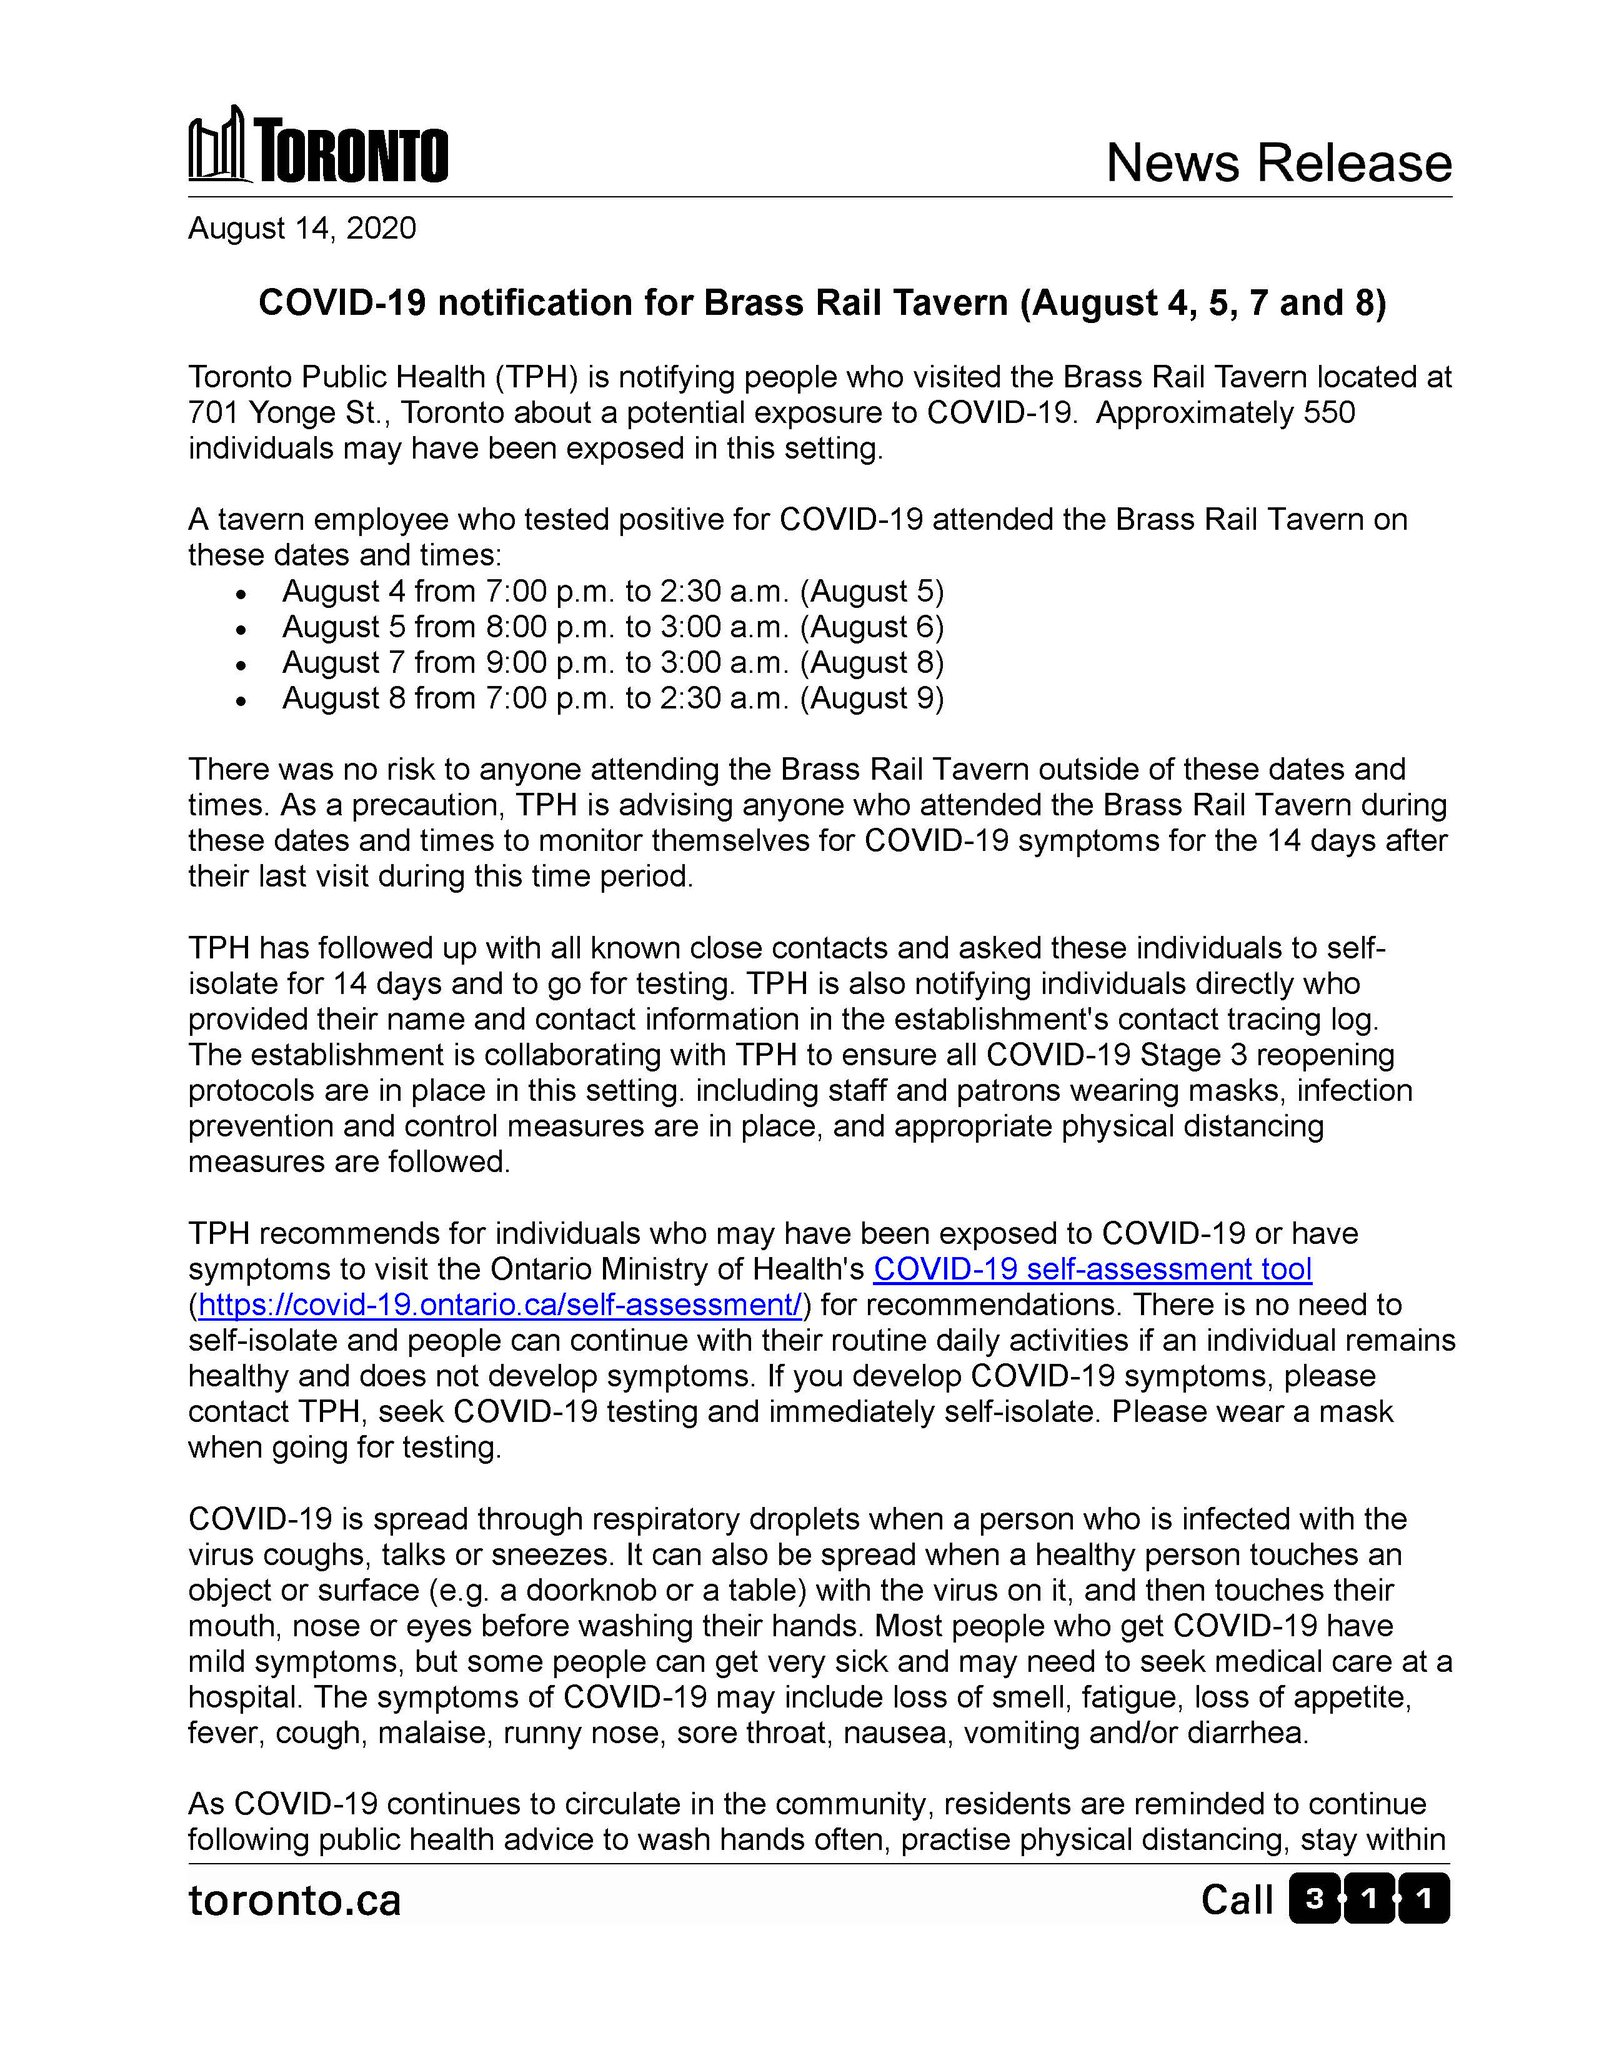 City Of Toronto On Twitter Covid19 Notification For Brass Rail Tavern August 4 5 7 And 8 News Release Https T Co 92n03i56cs